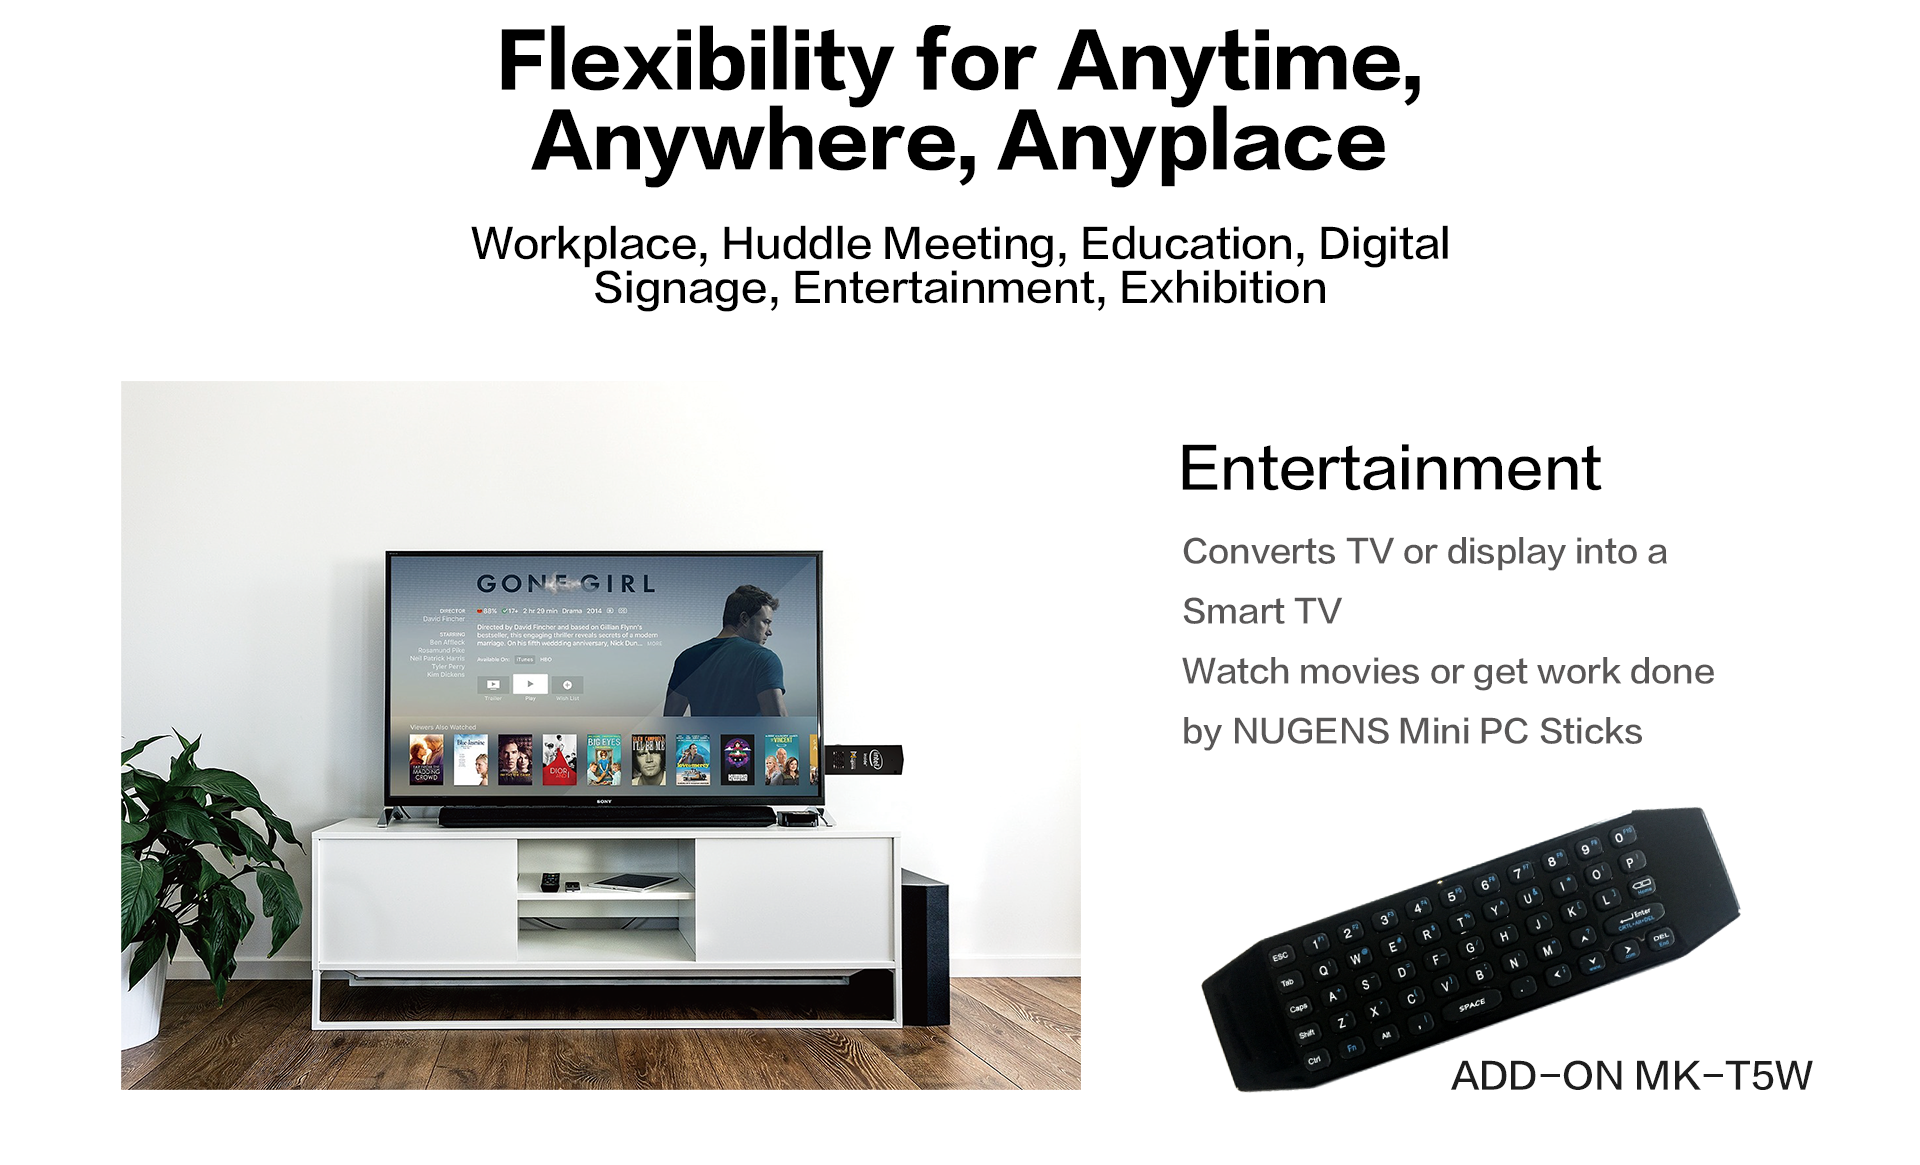 Converts TV or display into a Smart TV Watch movies or get work done by NUGENS Mini PC Sticks